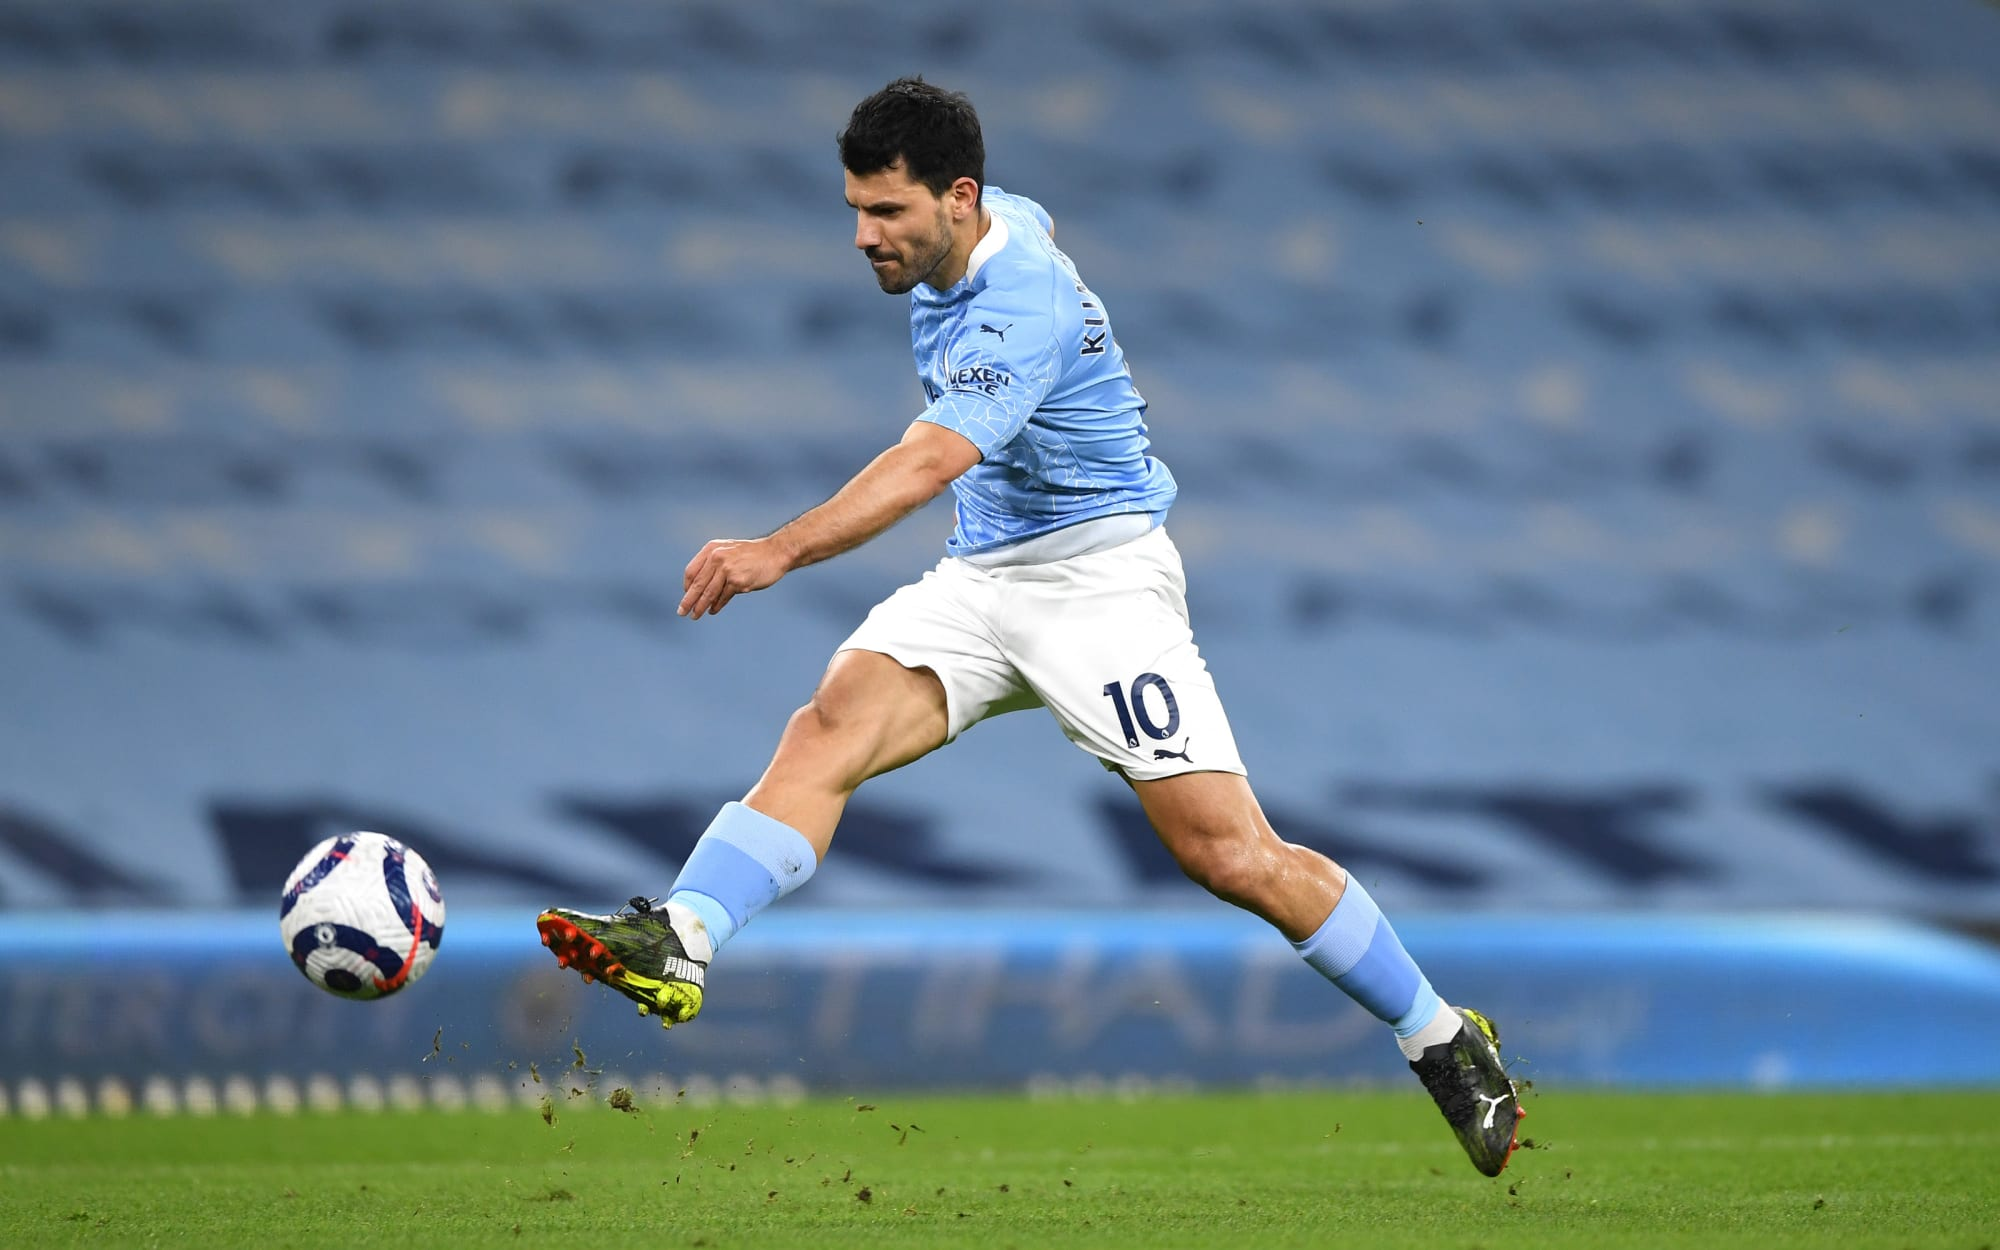 Sergio Aguero: The striker who is Manchester City's cult hero